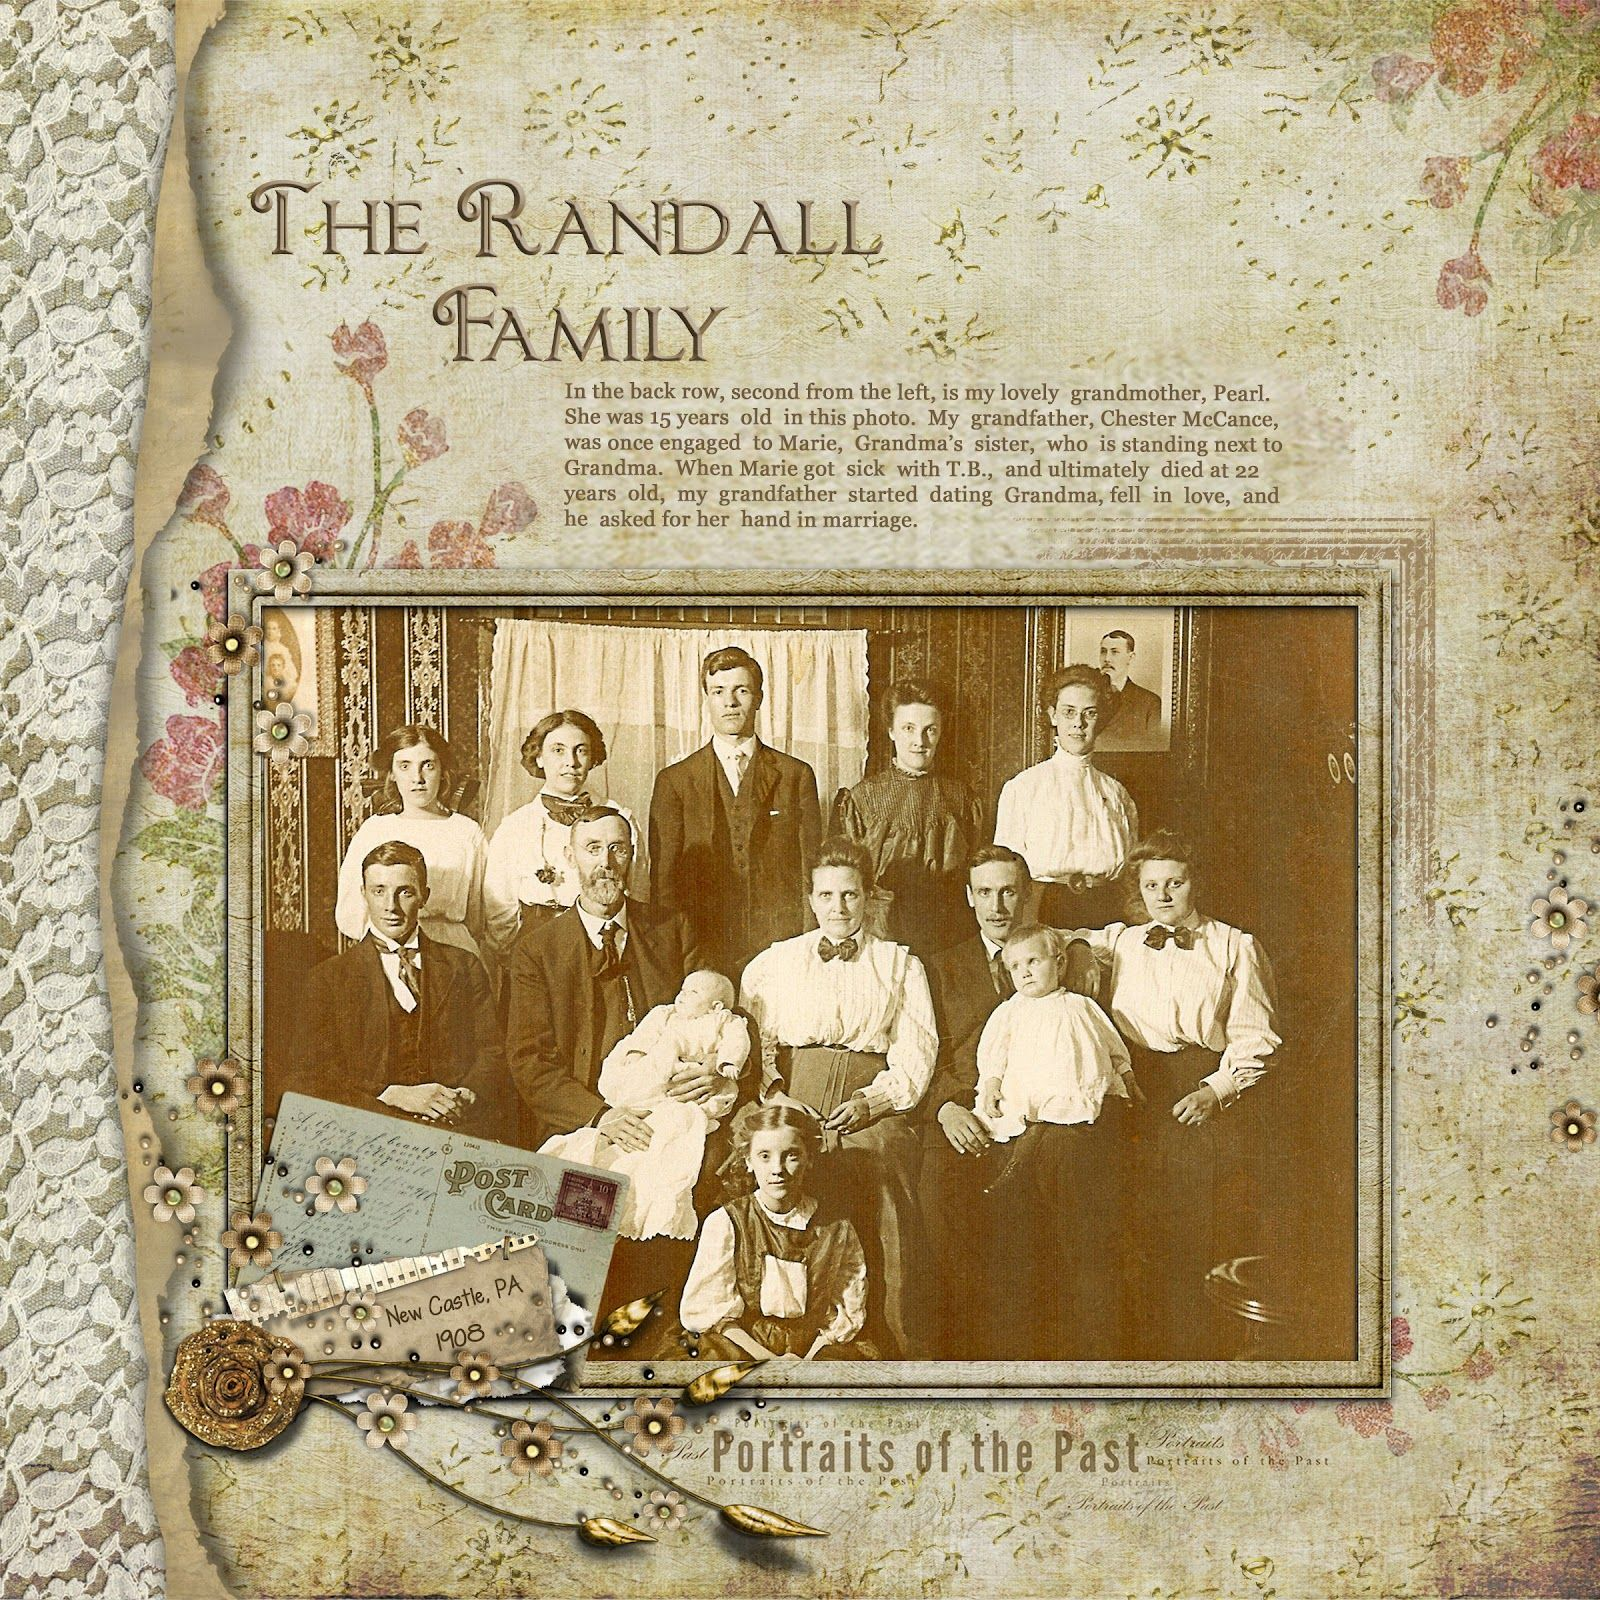 the randall family lovely heritage digi page with a beautiful lace border the soft focus colors and embellishments perfectly highlight the faded tones of